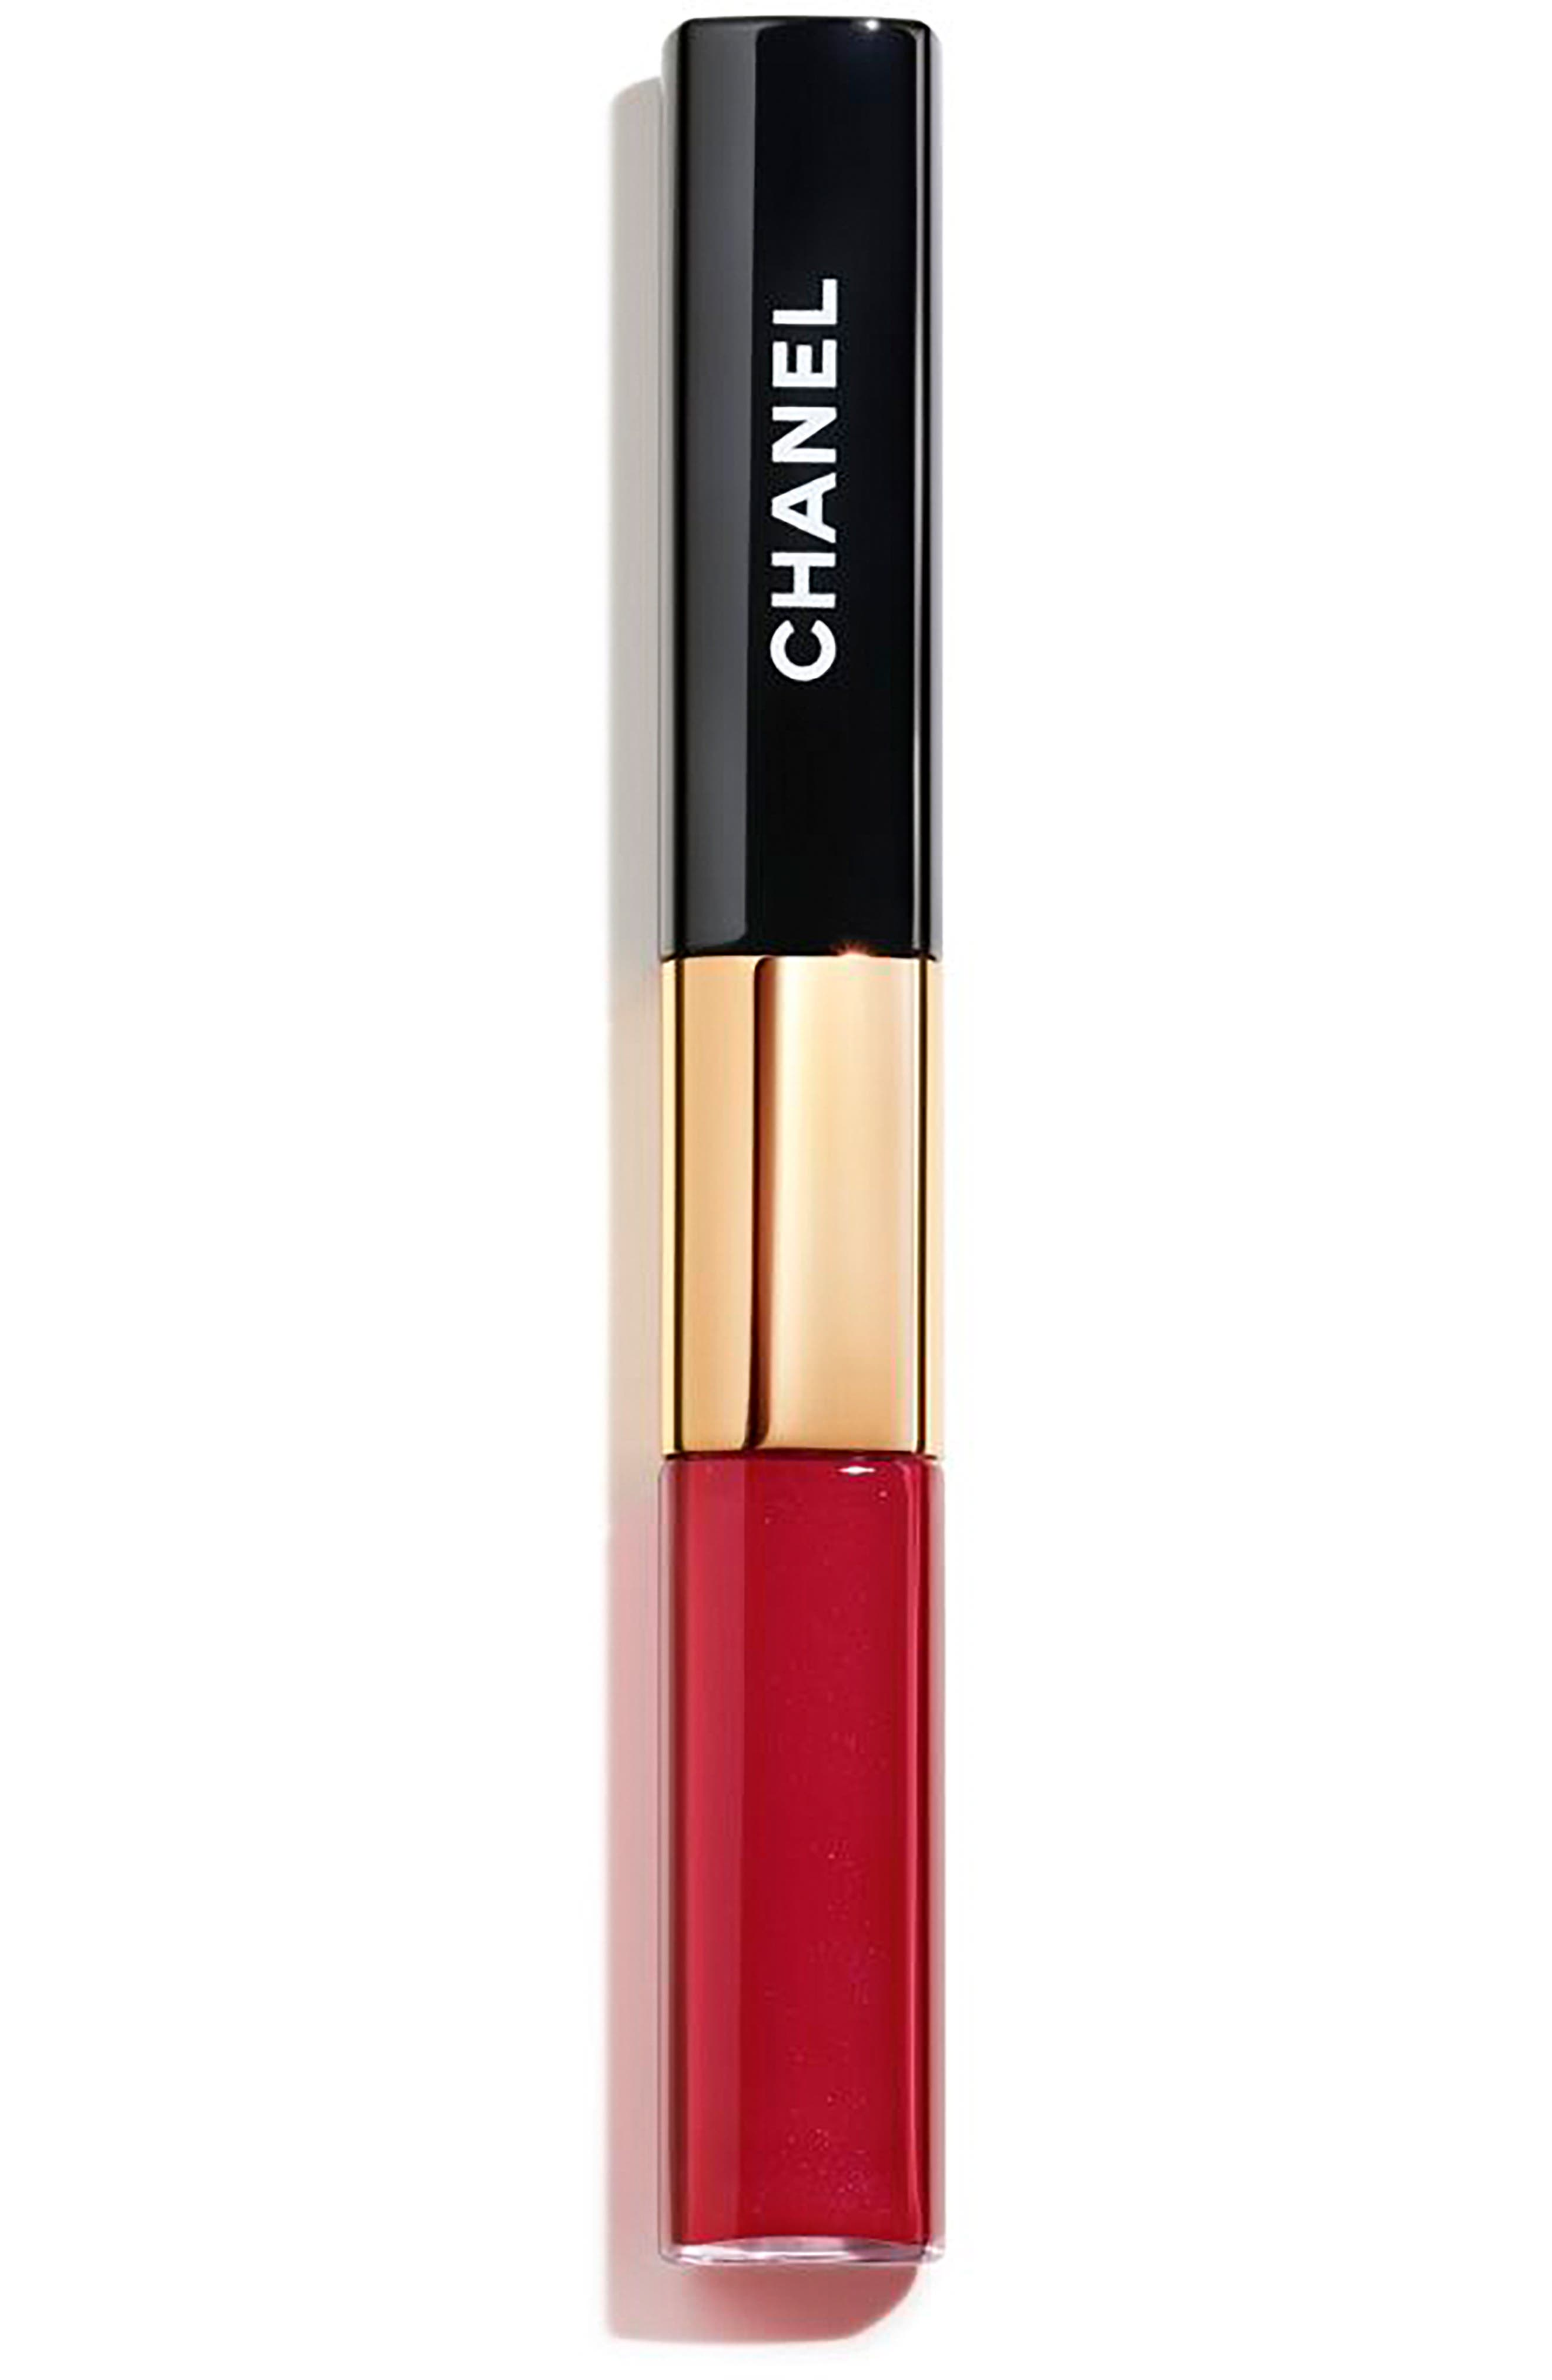 CHANEL LE ROUGE DUO ULTRA TENUE<br />Ultra Wear Lip Colour, Main, color, 47 DARING RED